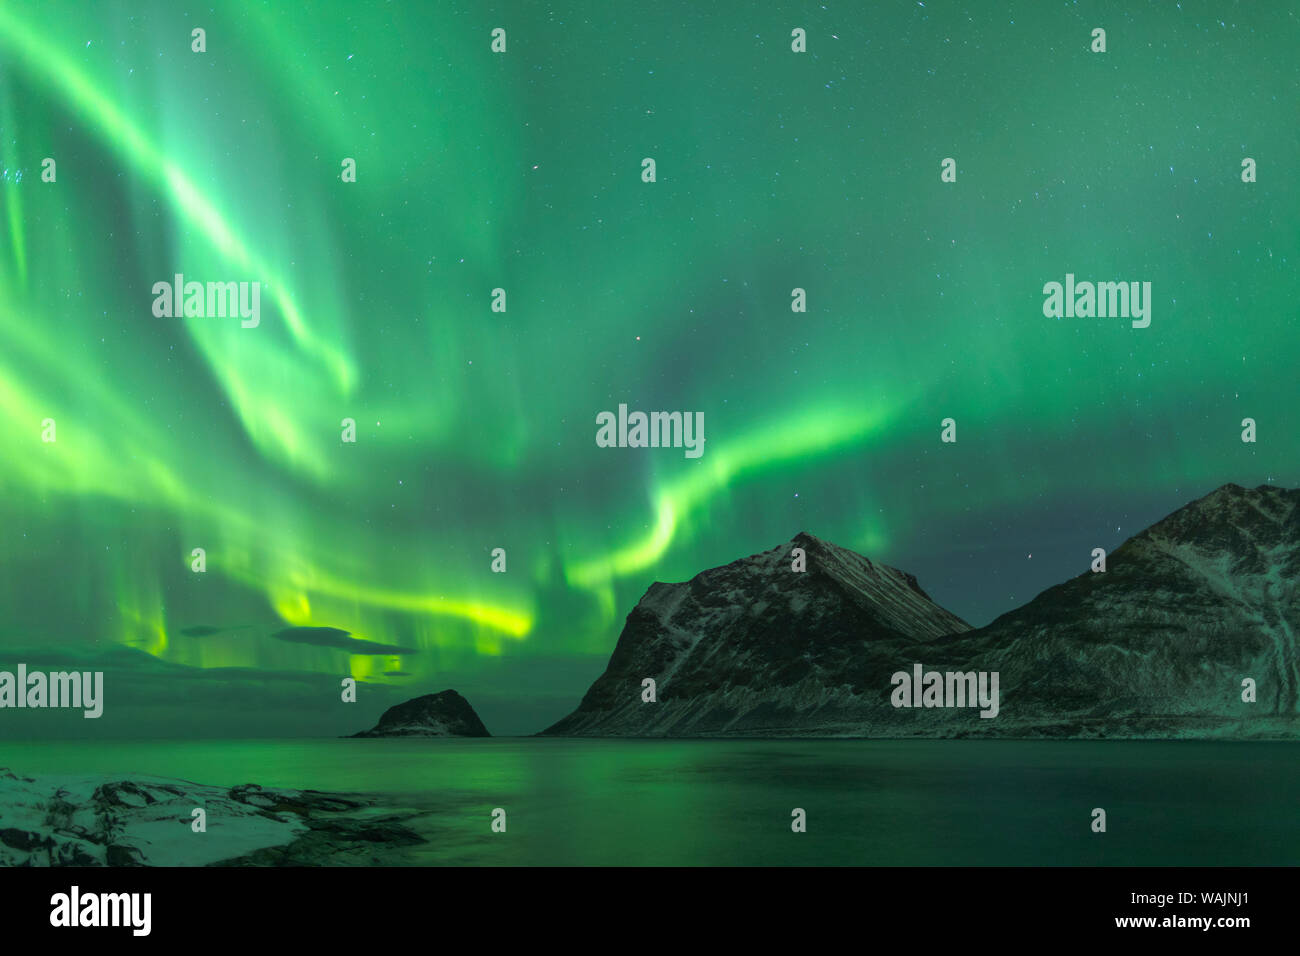 Norway, Lofoten Islands, Vestvag Island, Leknes. The aurora borealis shimmering over the coastline near Leknes. Stock Photo